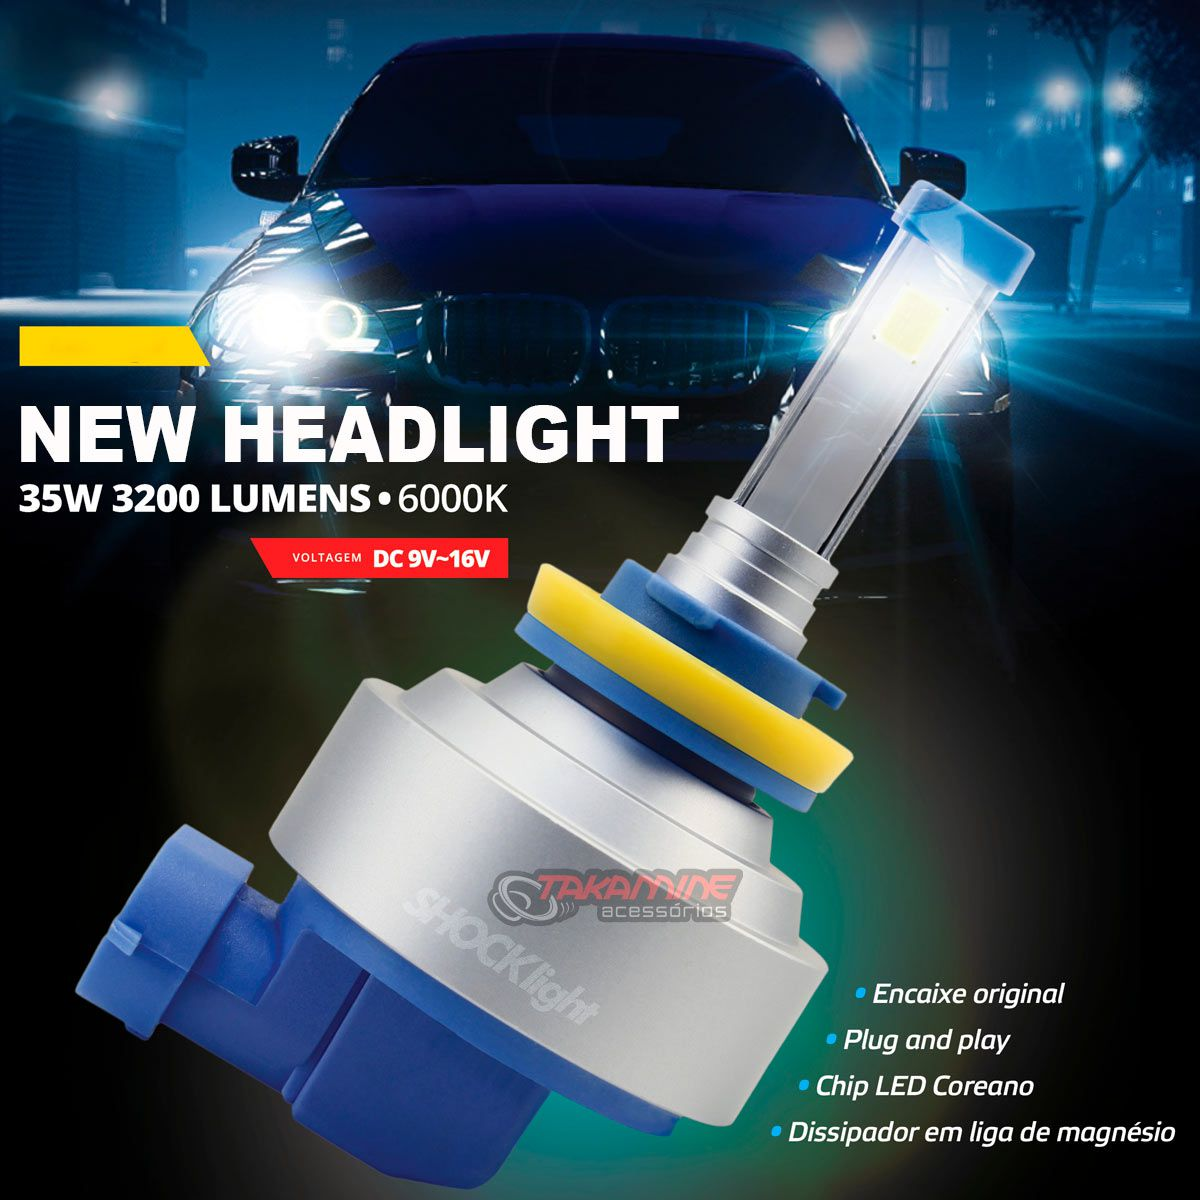 Kit LED Ford Ka 1997 até 2014 tipo xenon modelo H7 35W encaixe original plug & play New Headlight